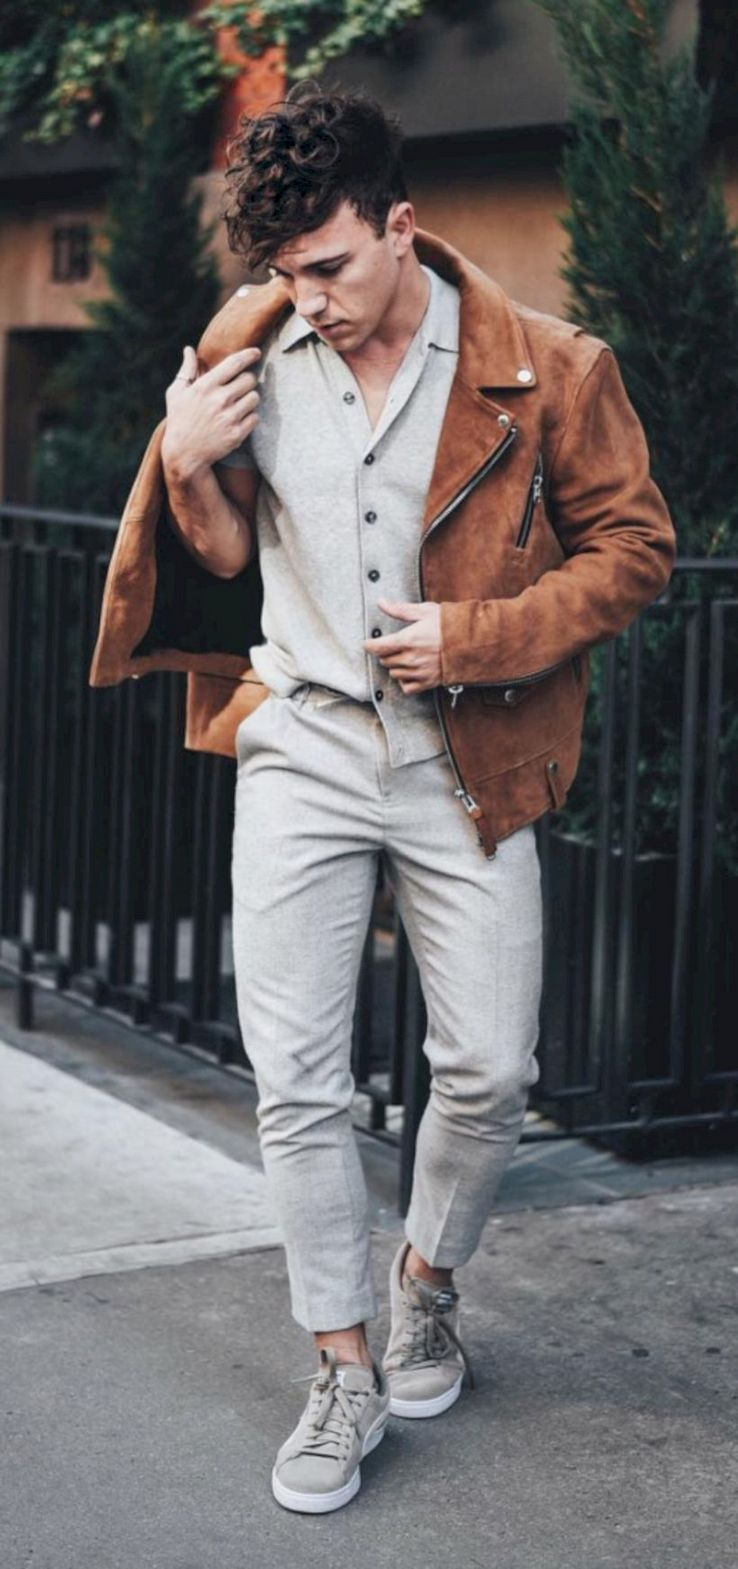 Winter Outfit Ideas For Men You Need Your Outfit Suggestions To Seem Nice While At The Exact Mens Casual Outfits Mens Winter Fashion Business Casual Outfits